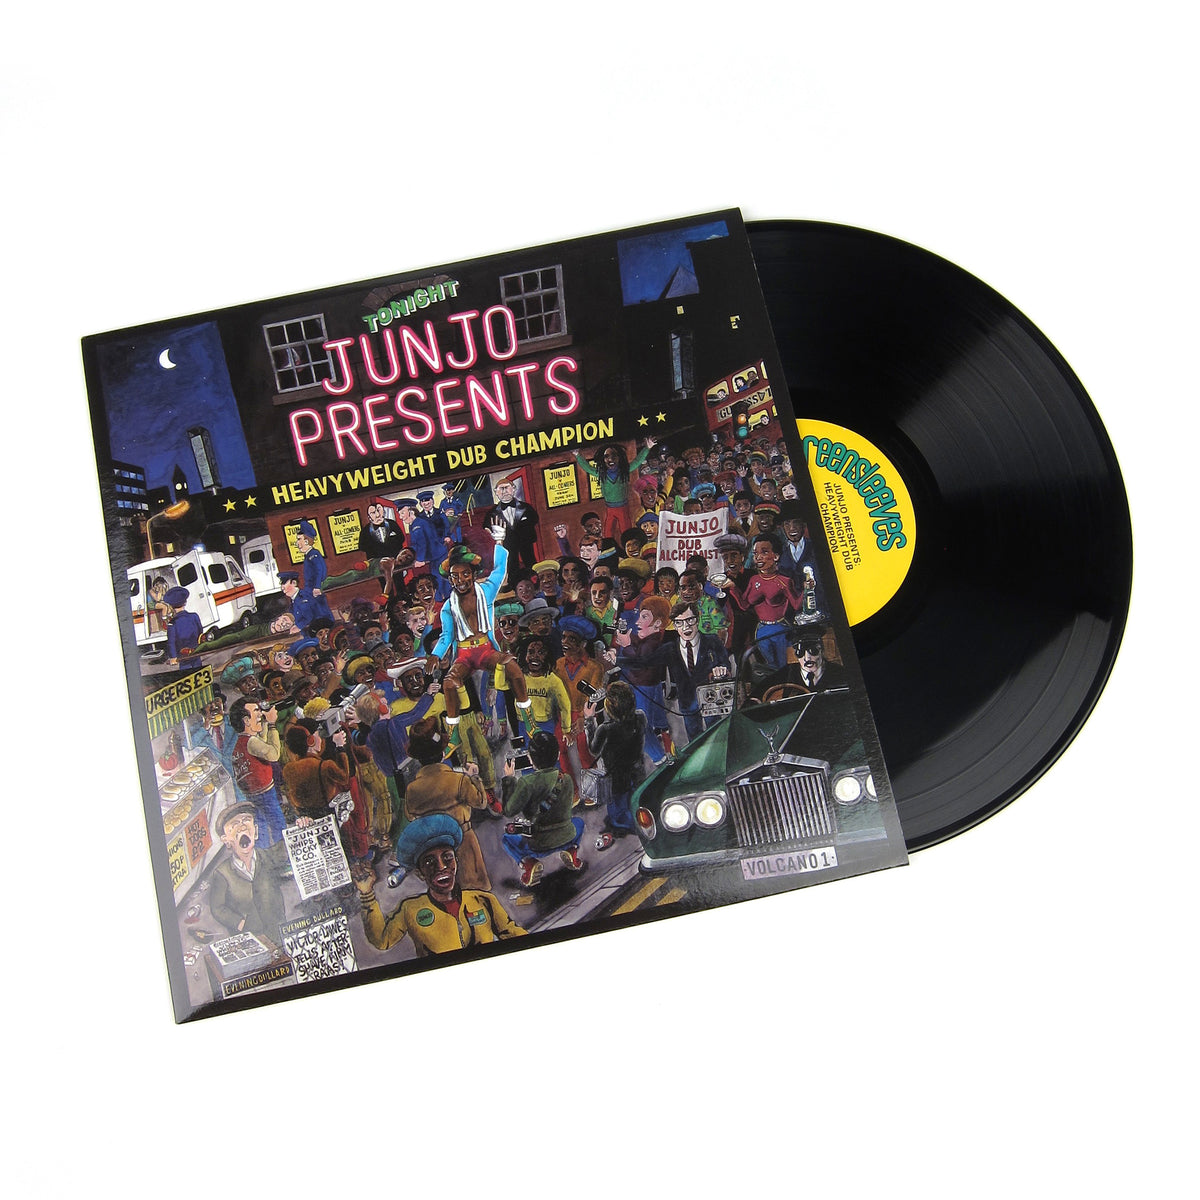 Henry Junjo Lawes: Junjo Presents - Heavyweight Dub Champion Vinyl 2LP